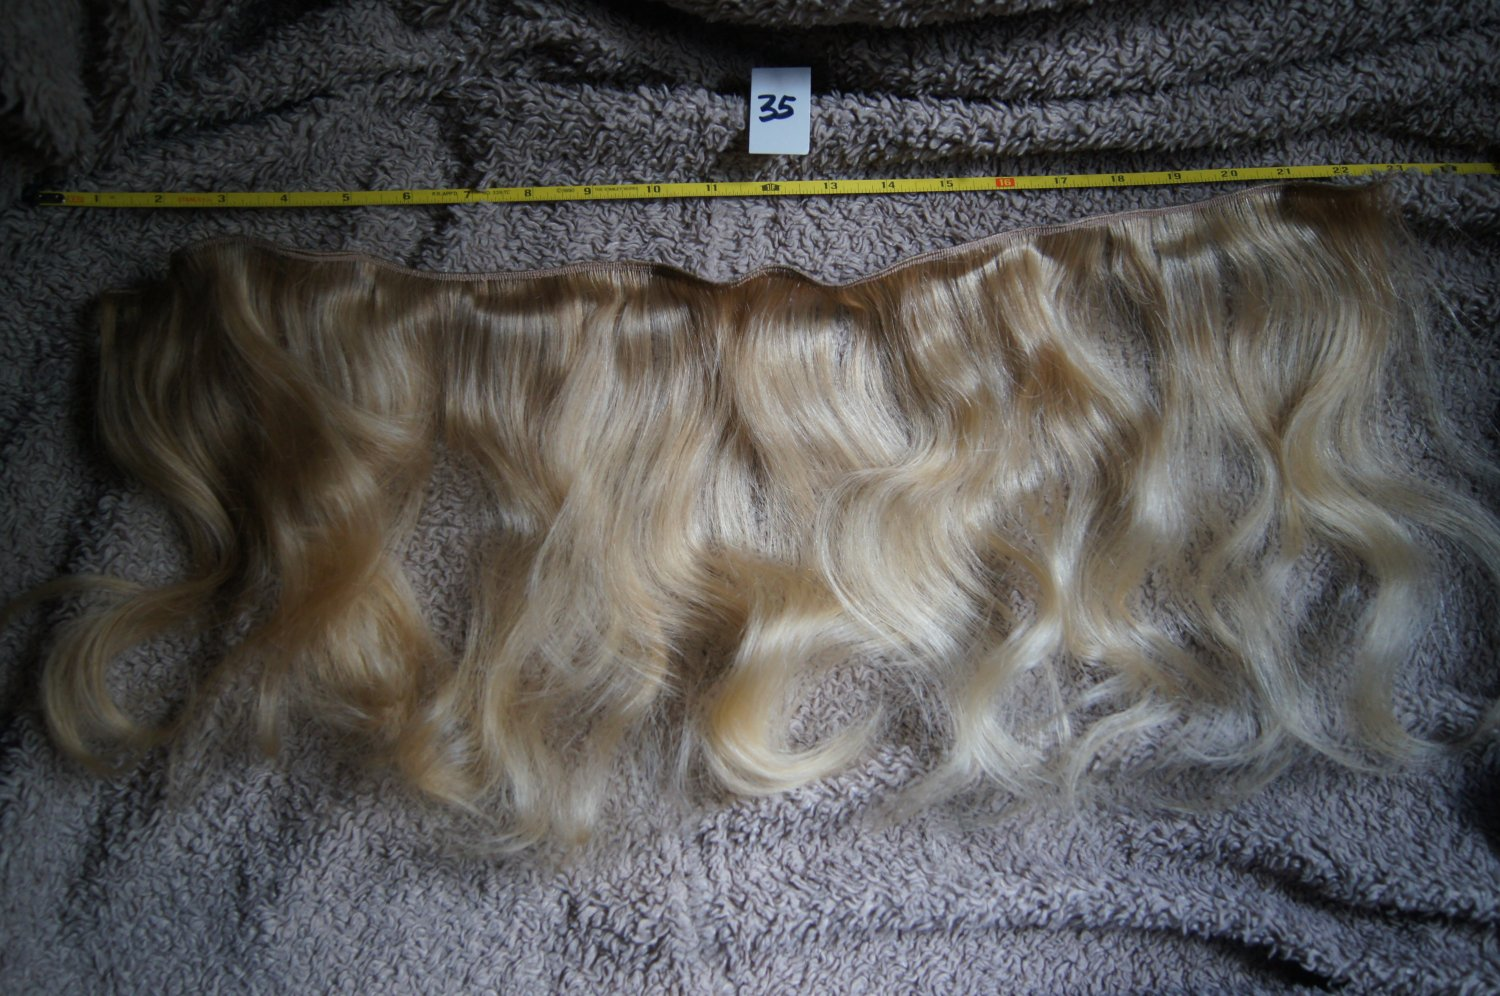 14 inch raw virgin blonde wavy curly human hair extension weft SOLD